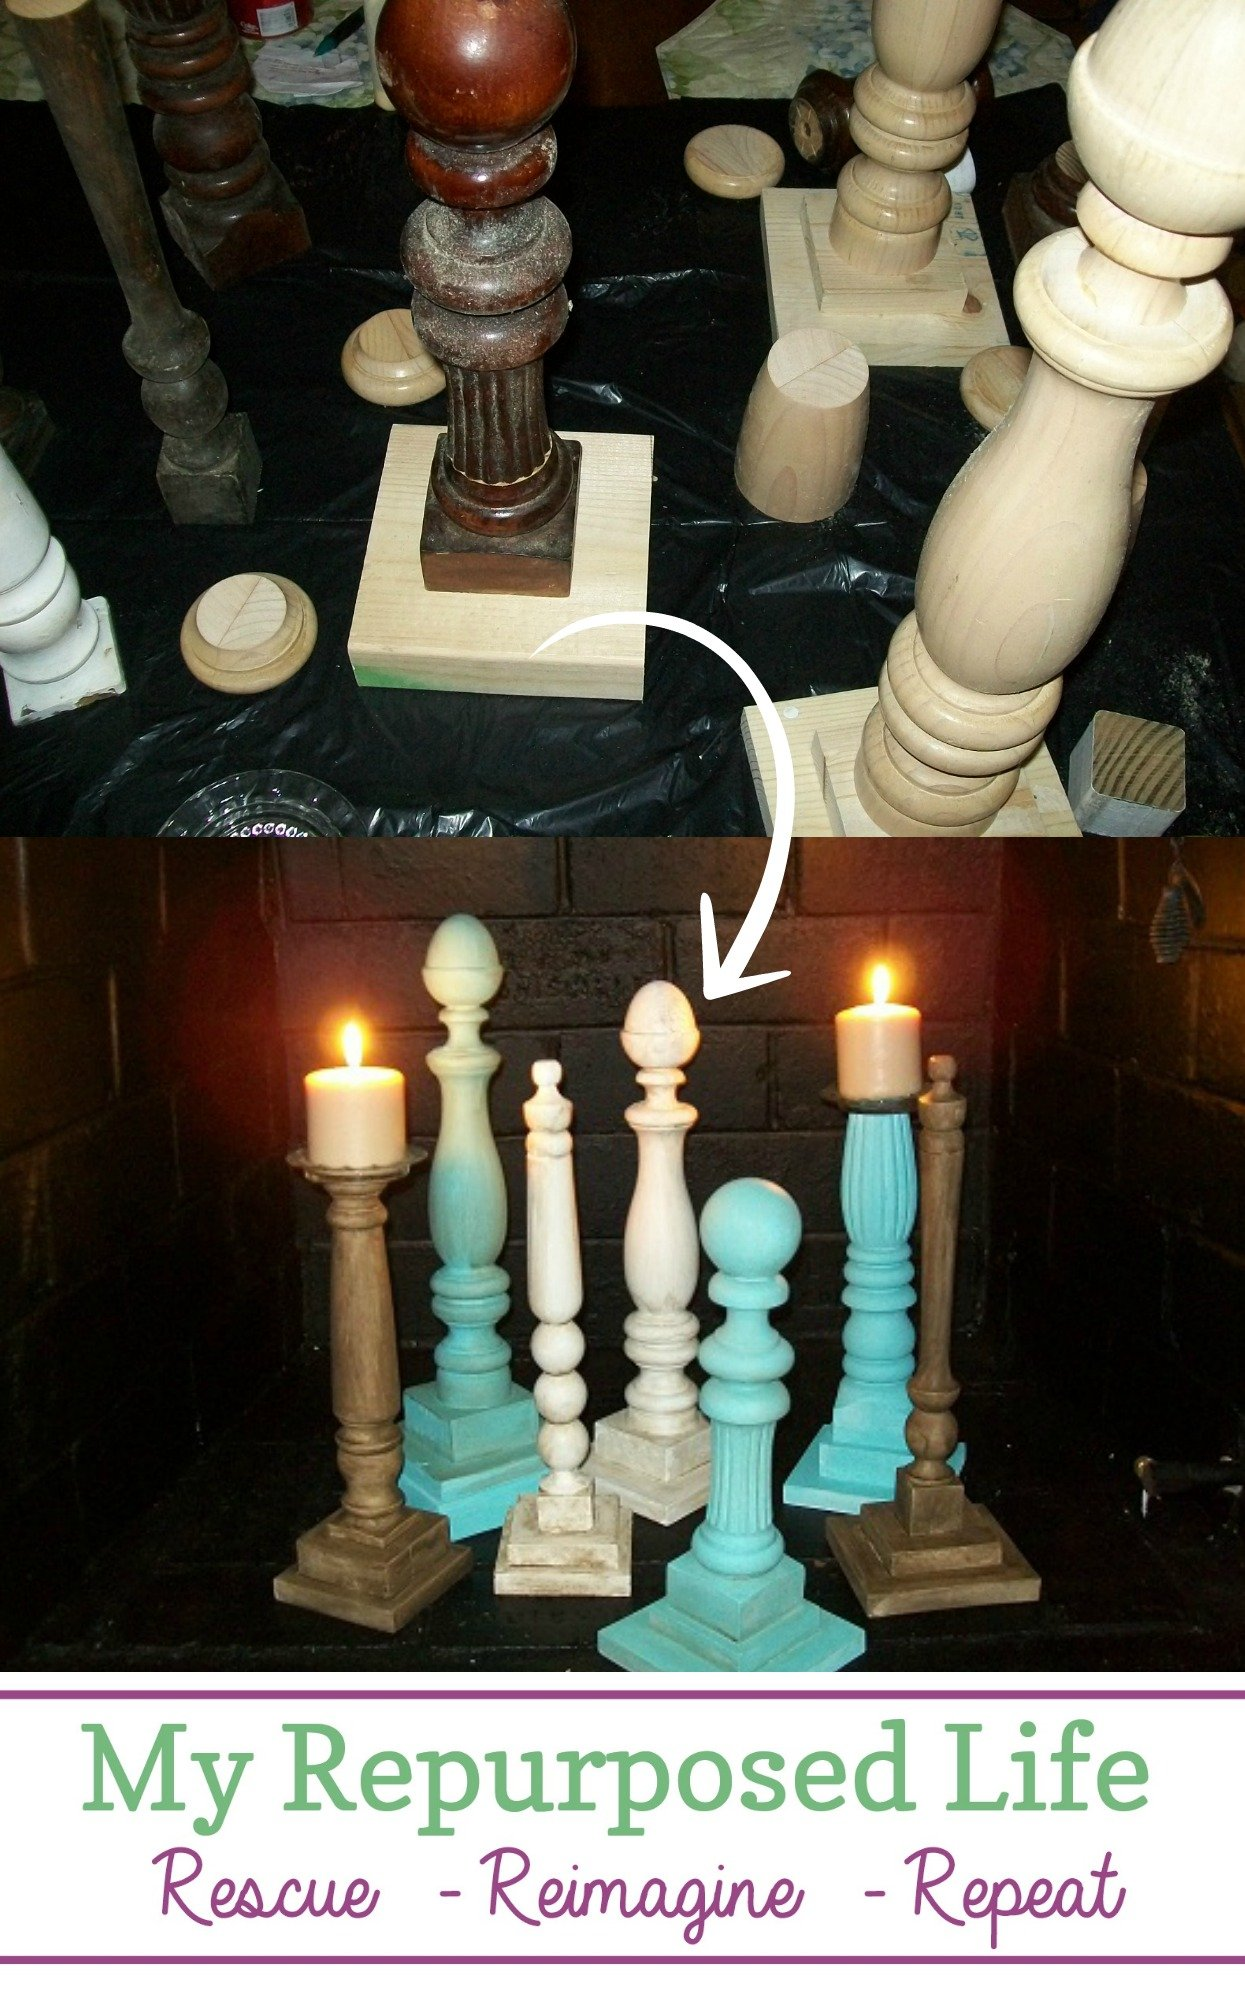 How to make fun and creative finials and wooden diy candlesticks out of old beds, chairs and more! #MyRepurposedLife #spindles #candlesticks #diy #project #easy via @repurposedlife